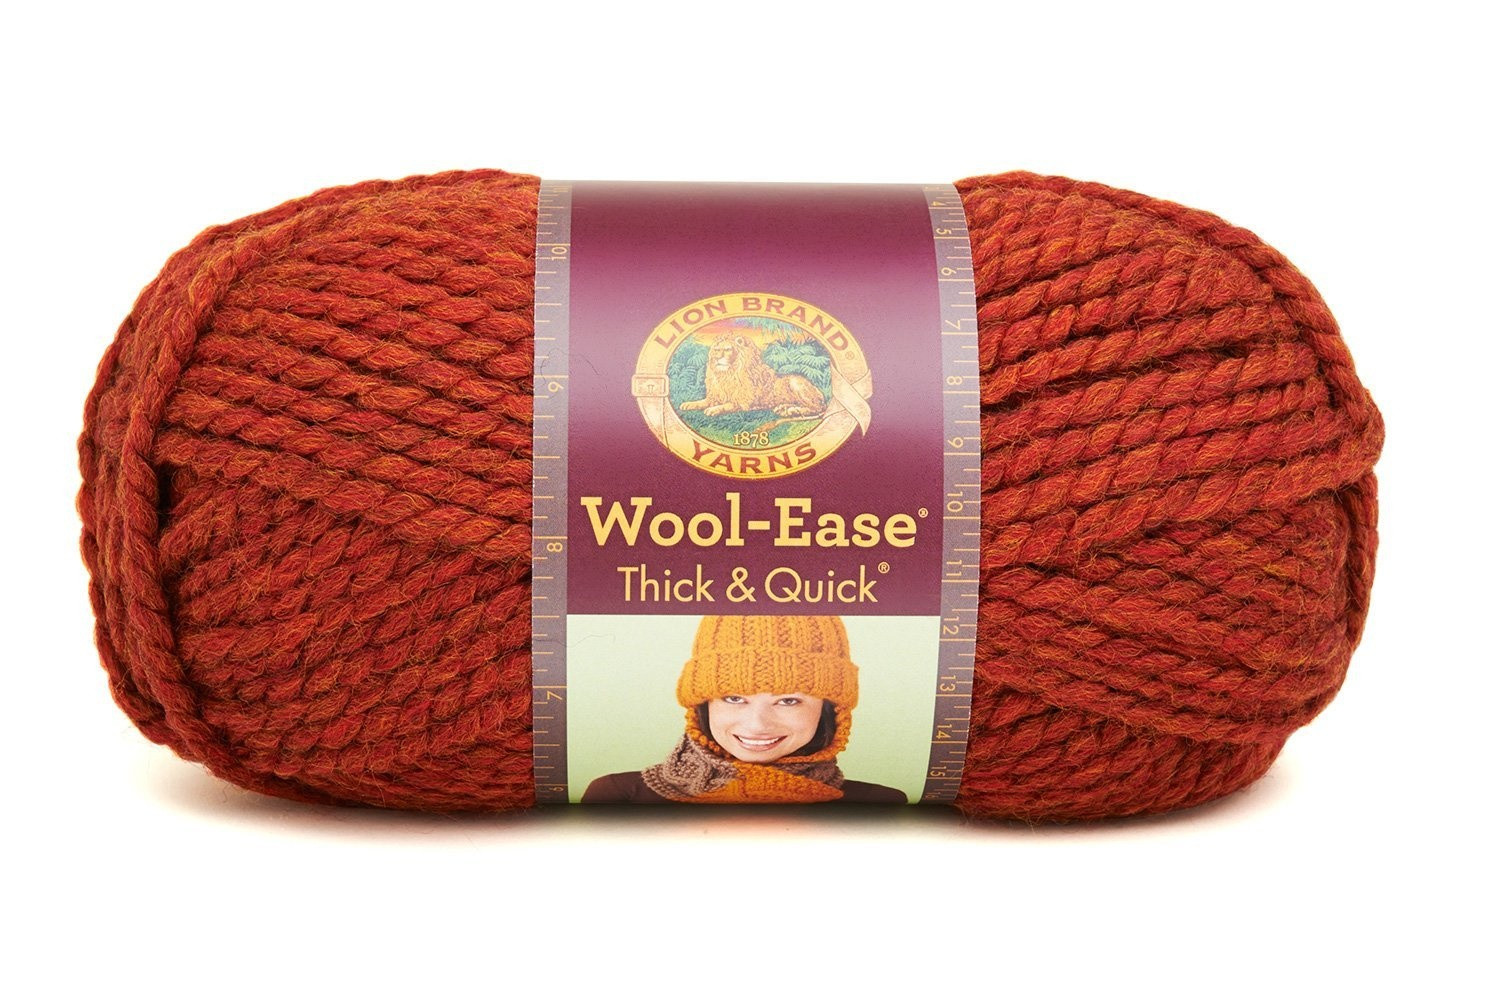 Lion Brand Wool Ease Thick and Quick Fresh Lion Brand Yarn 640 136f Wool Ease Thick and Quick Yarn Of Incredible 48 Images Lion Brand Wool Ease Thick and Quick